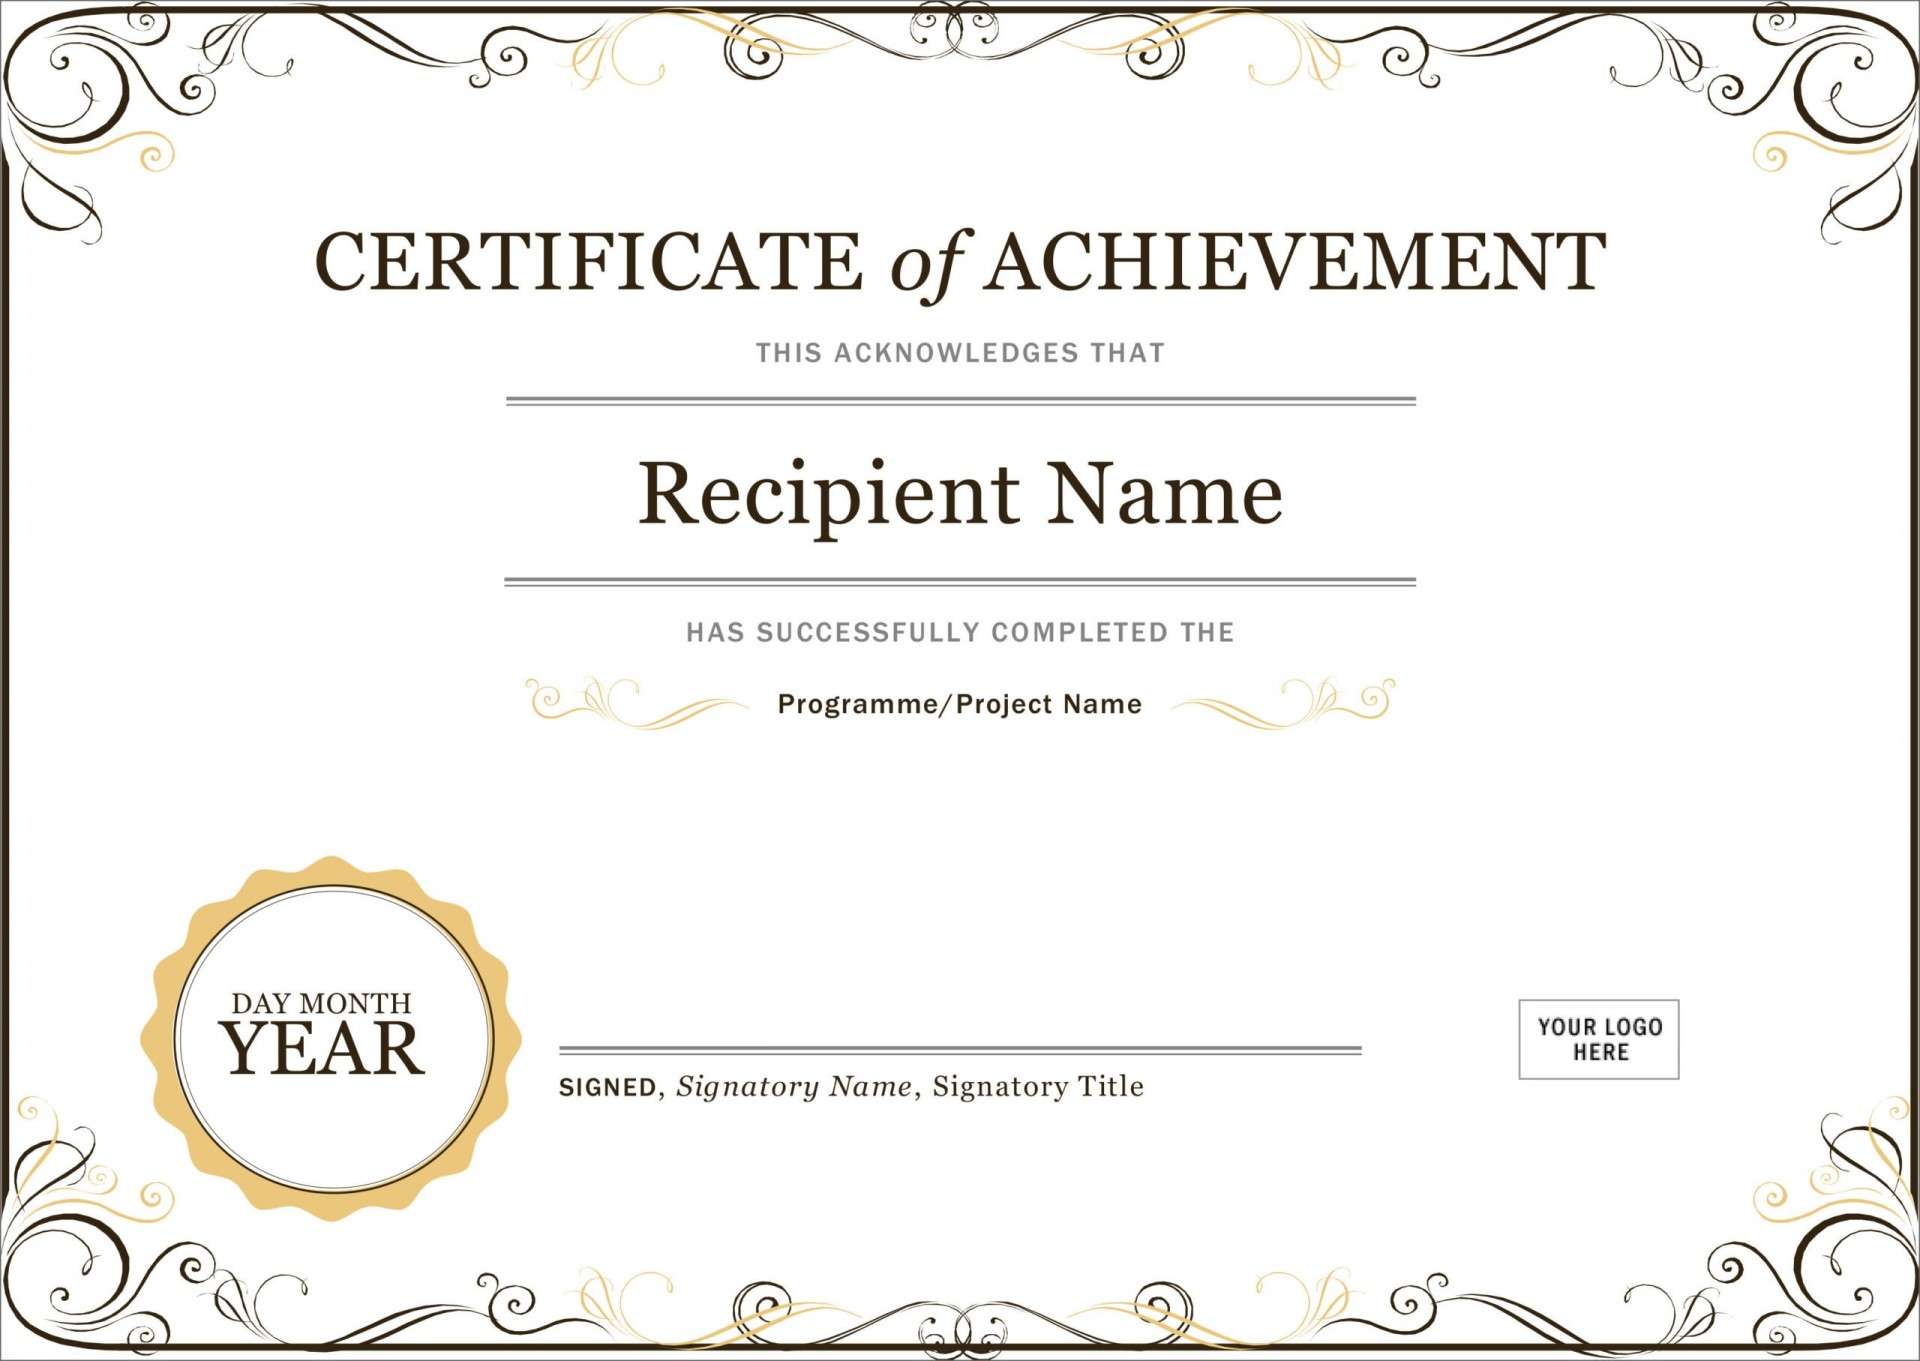 005 Magnificent Microsoft Word Certificate Template High Def  2003 Award M Appreciation Of Authenticity1920